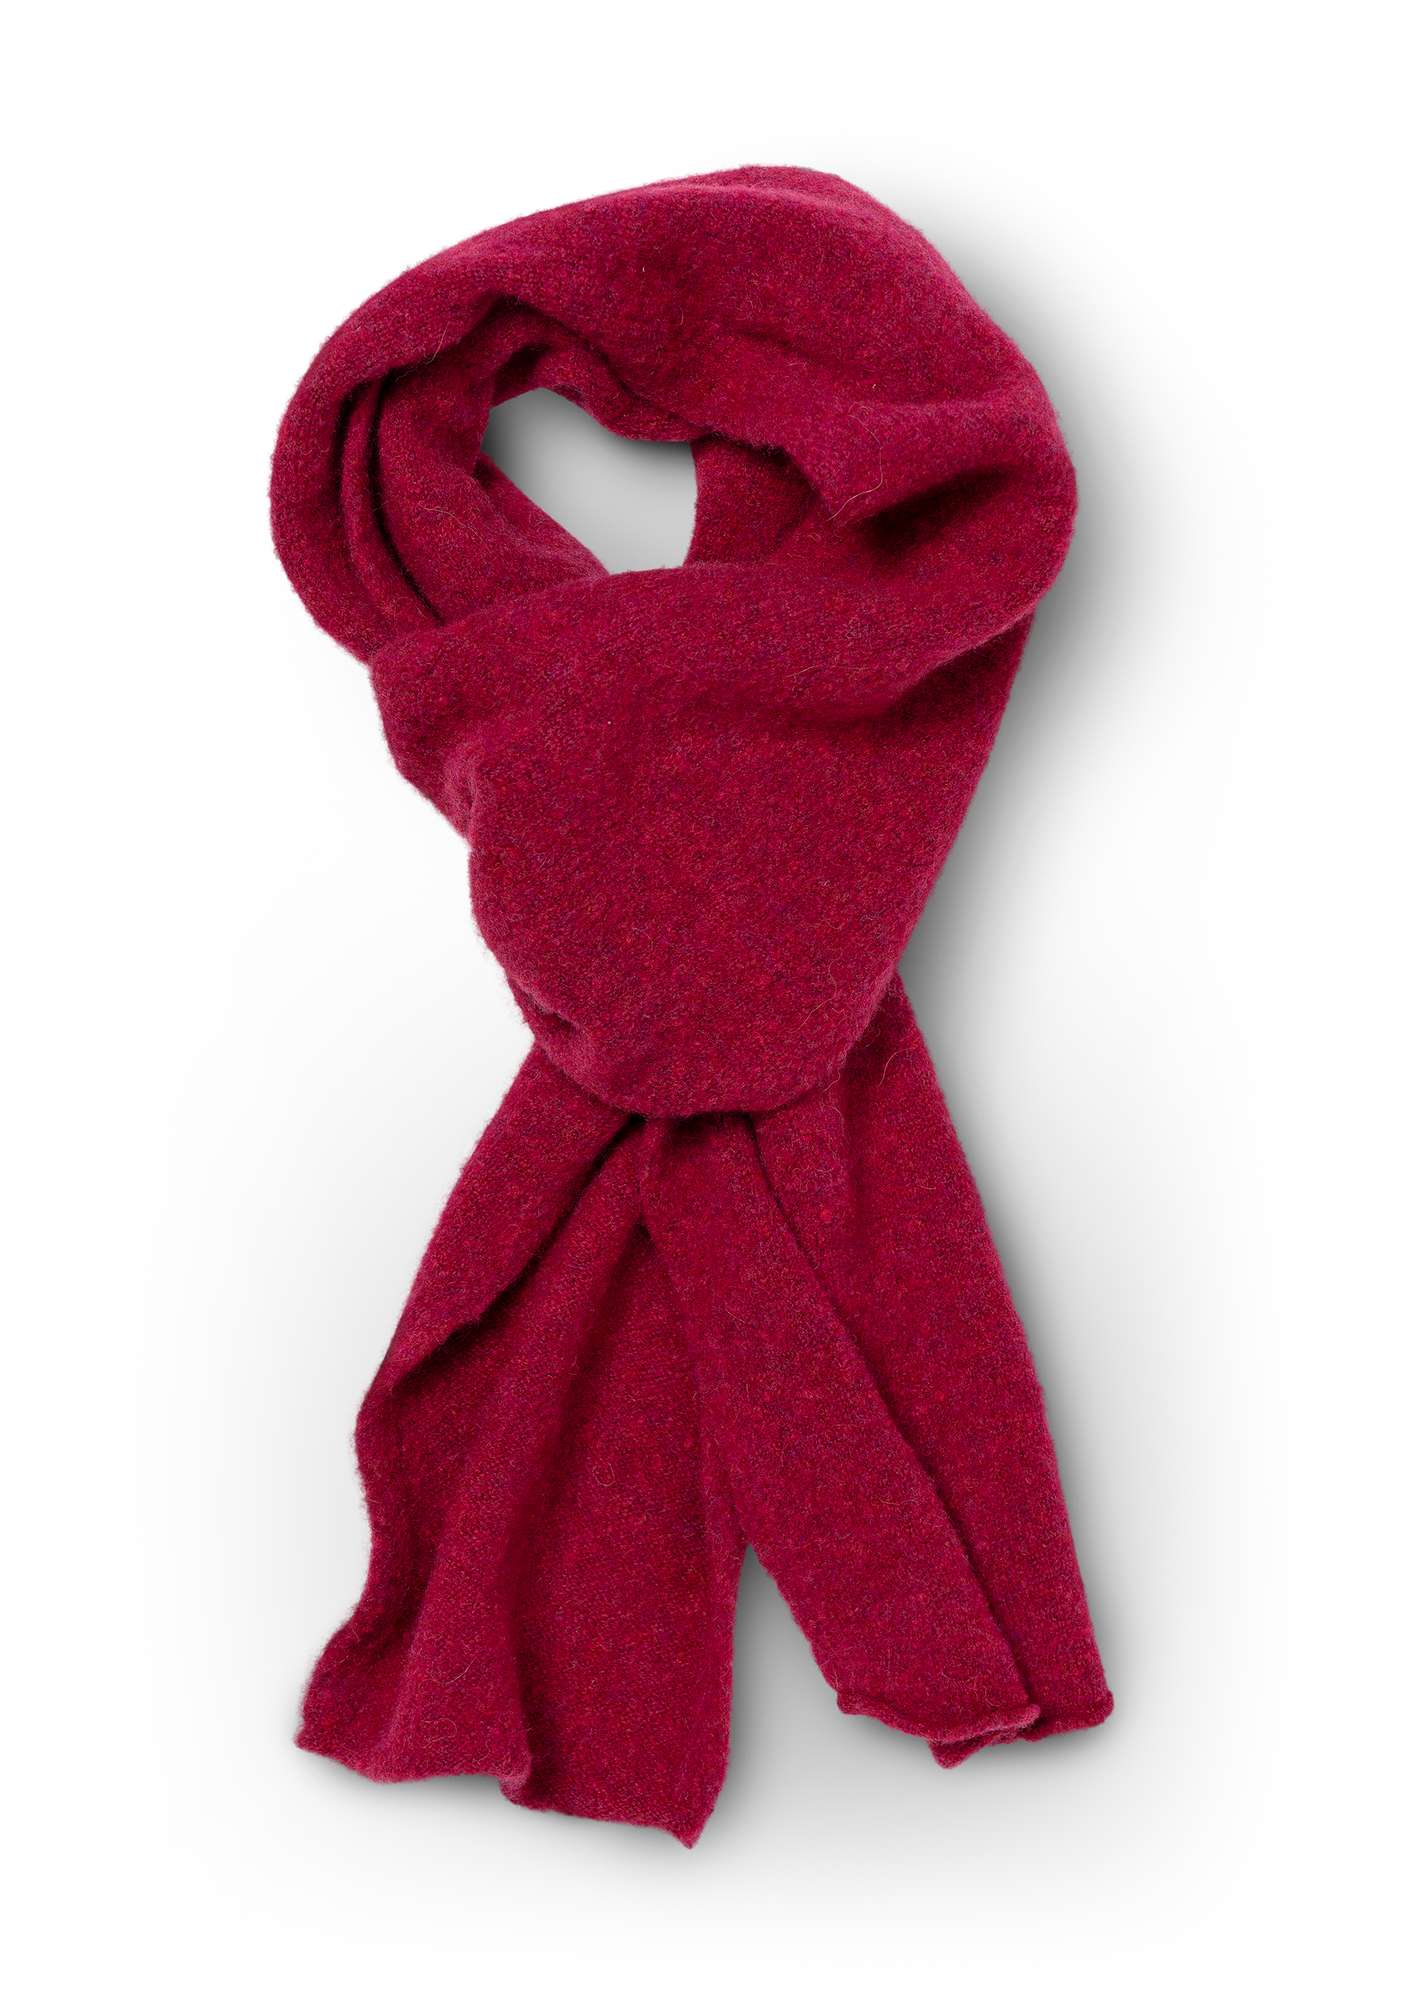 Solid-color scarf in a recycled cashmere blend dark hibiscus